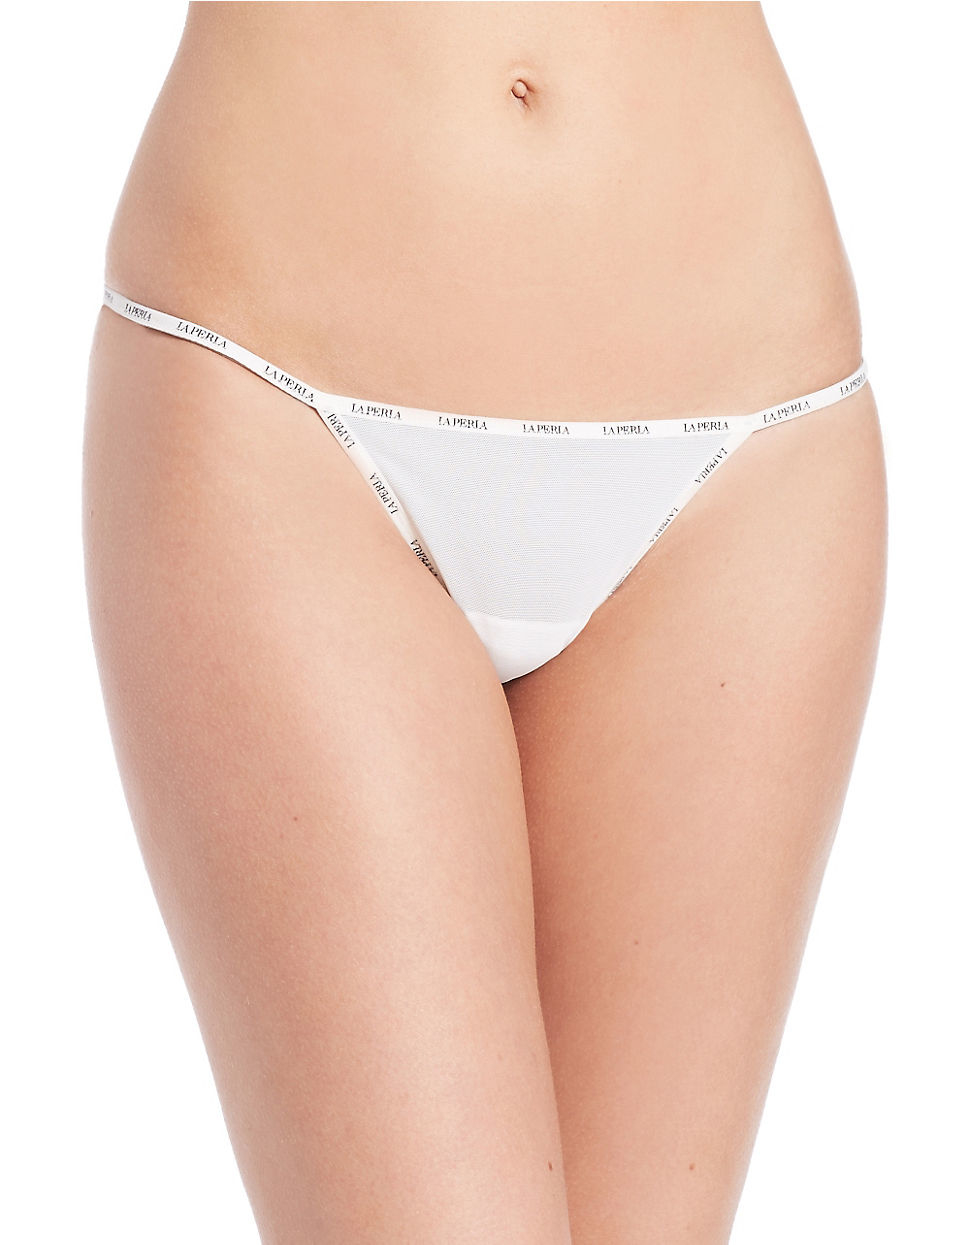 La perla Sexy Town Thong in Natural